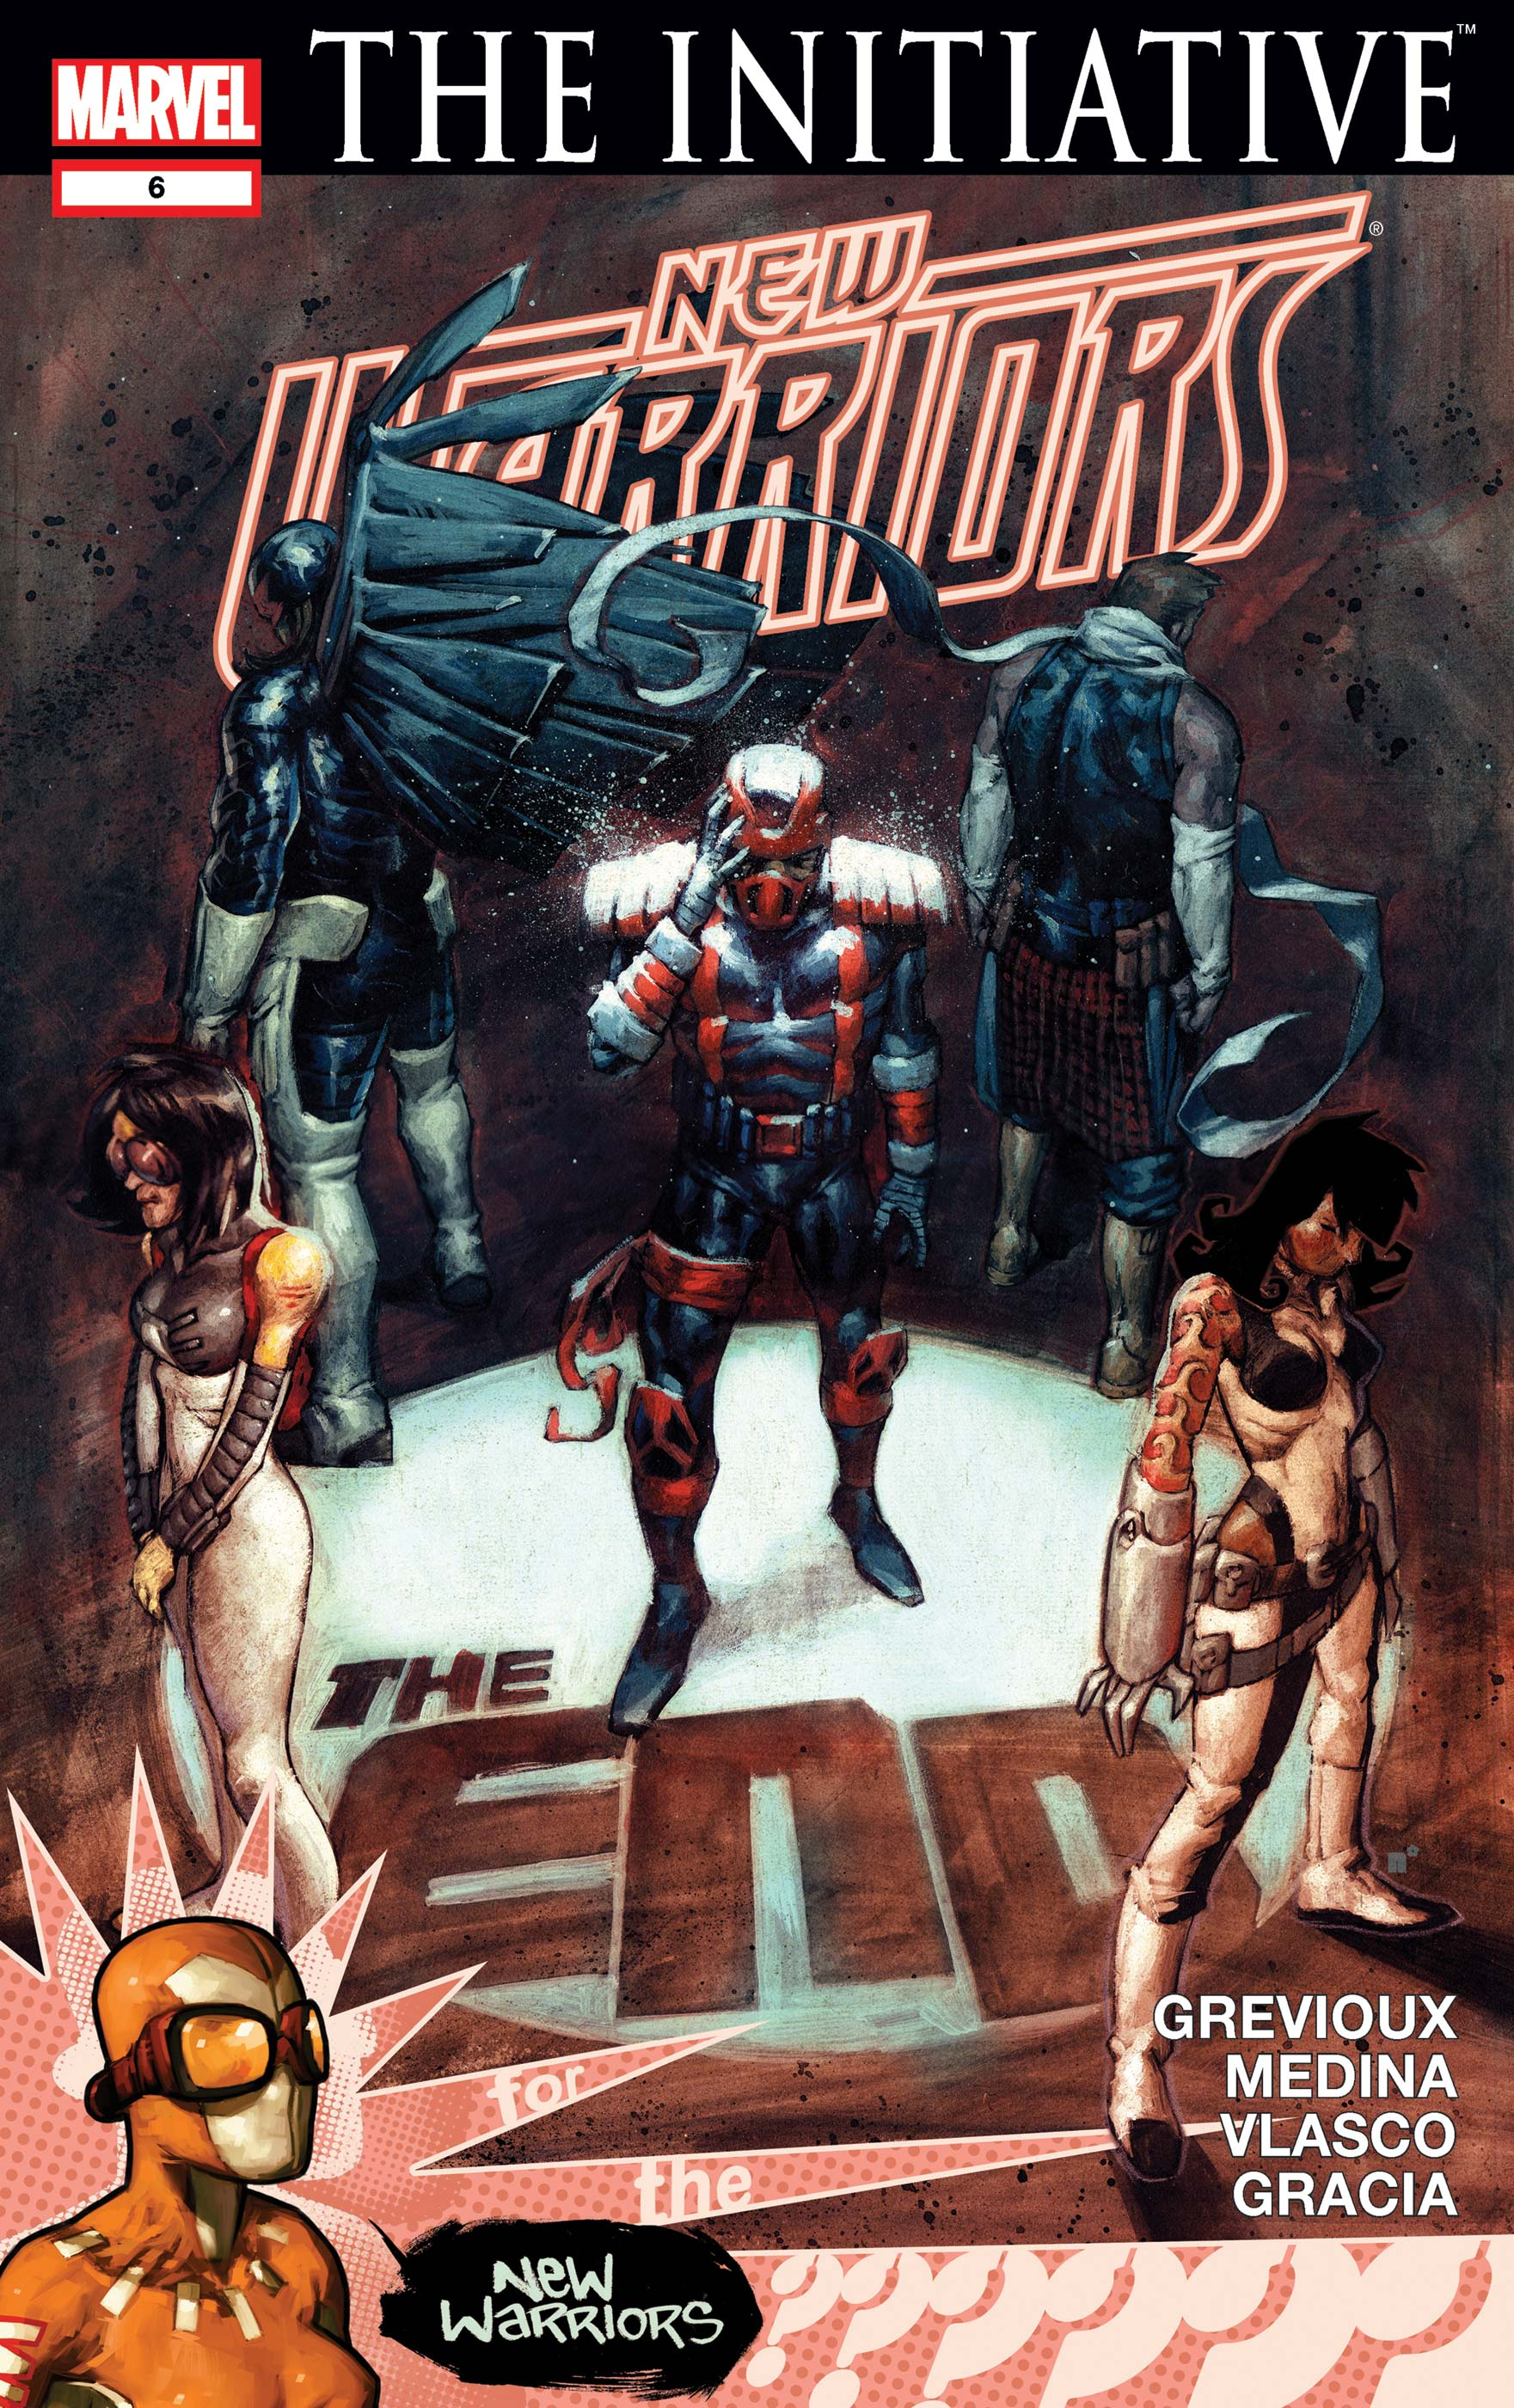 New Warriors (2007) #6